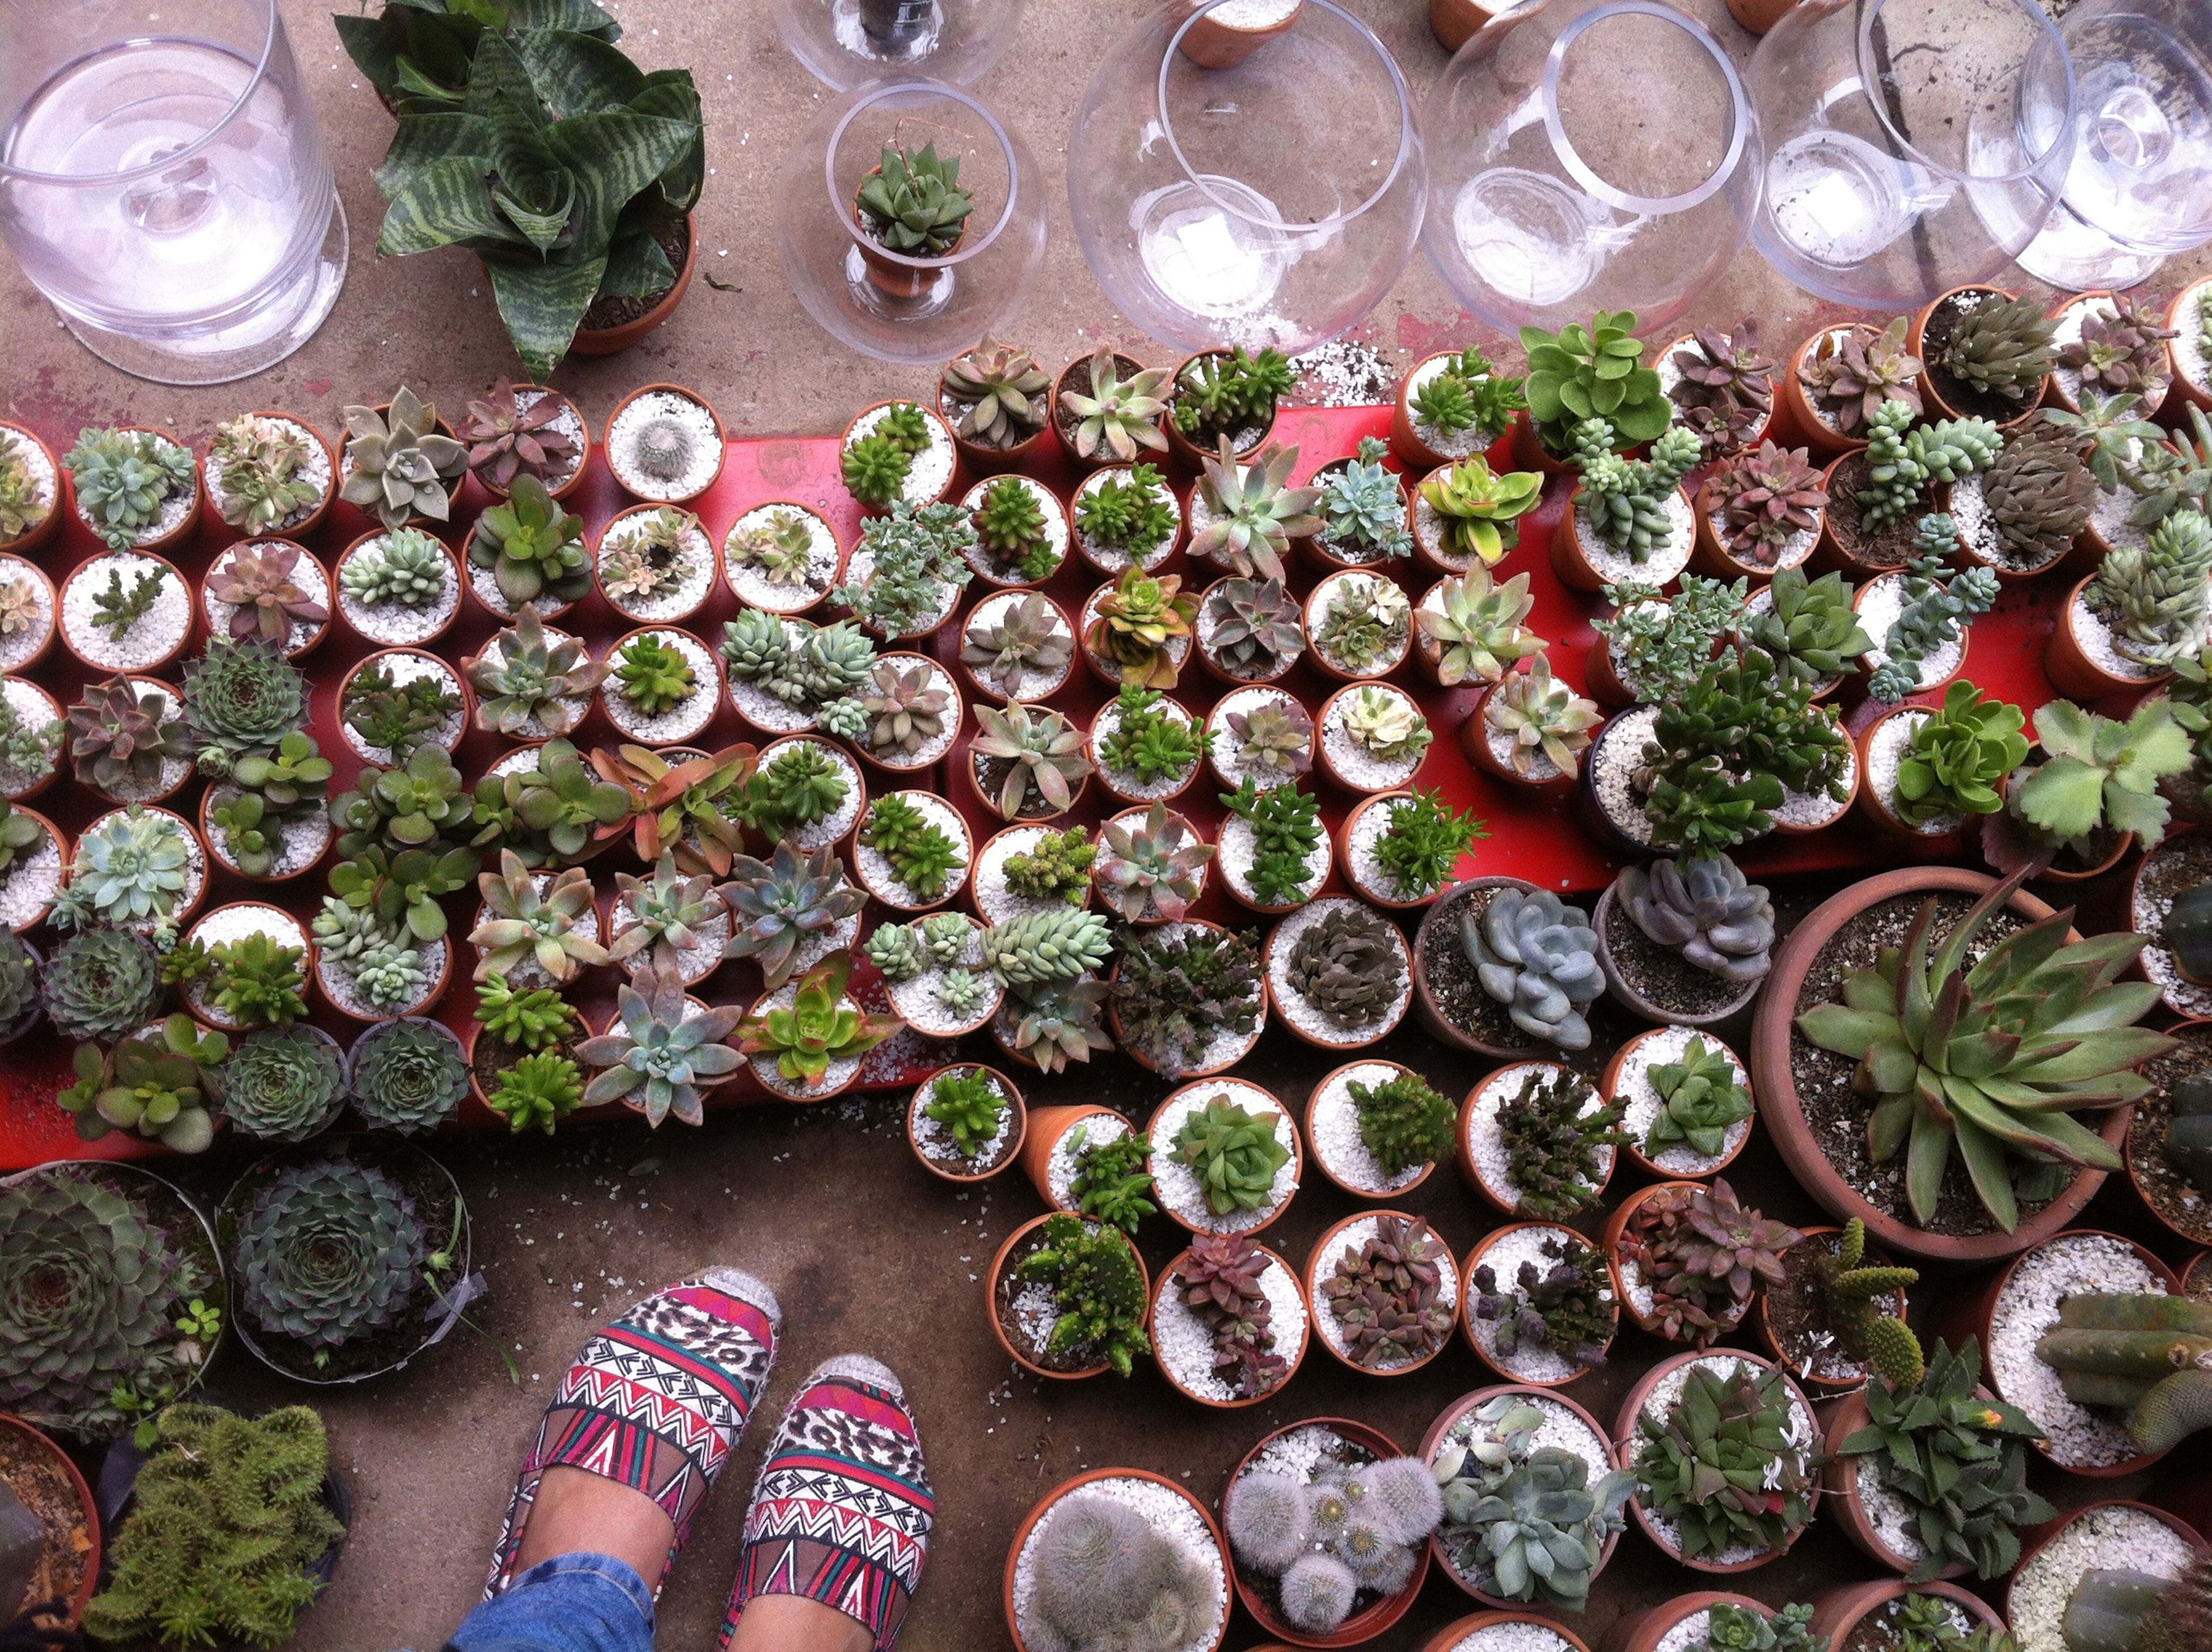 high angle view, abundance, large group of objects, stone - object, variation, directly above, outdoors, day, wood - material, freshness, close-up, pebble, part of, arrangement, full frame, no people, stack, nature, food and drink, backgrounds